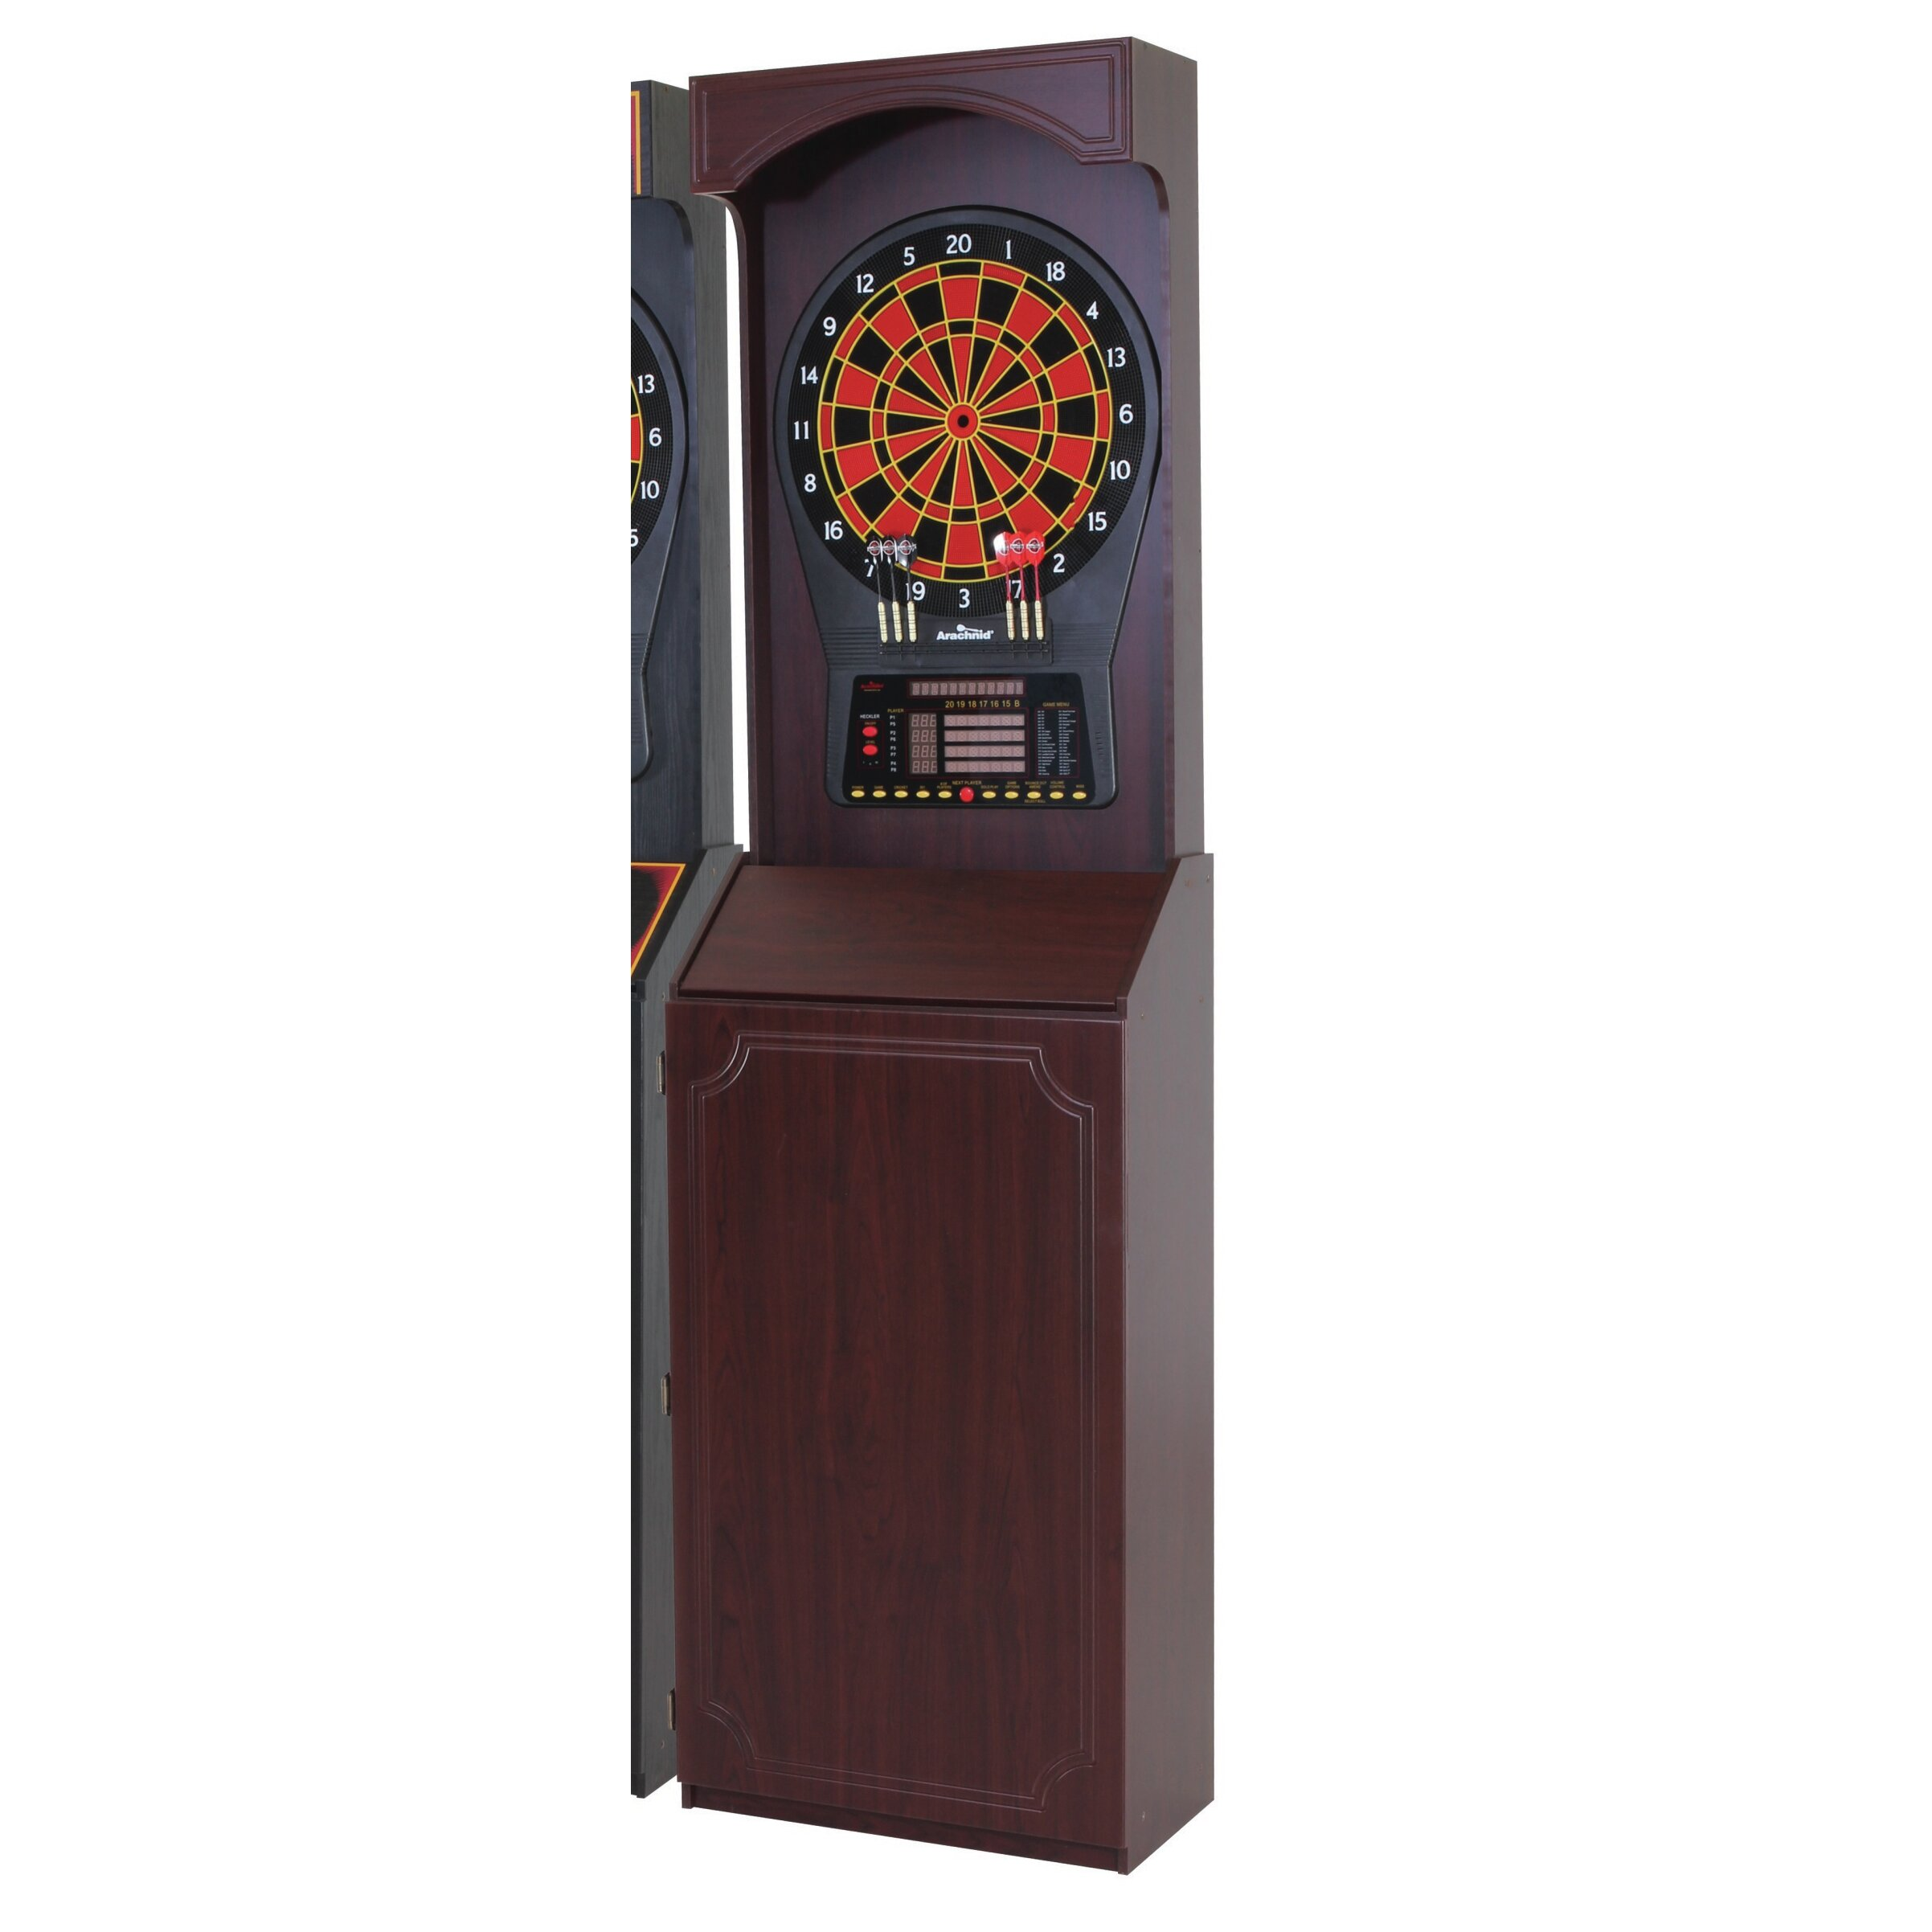 escalade sports cricket pro 800 electronic dartboard with arcade style cabinet reviews